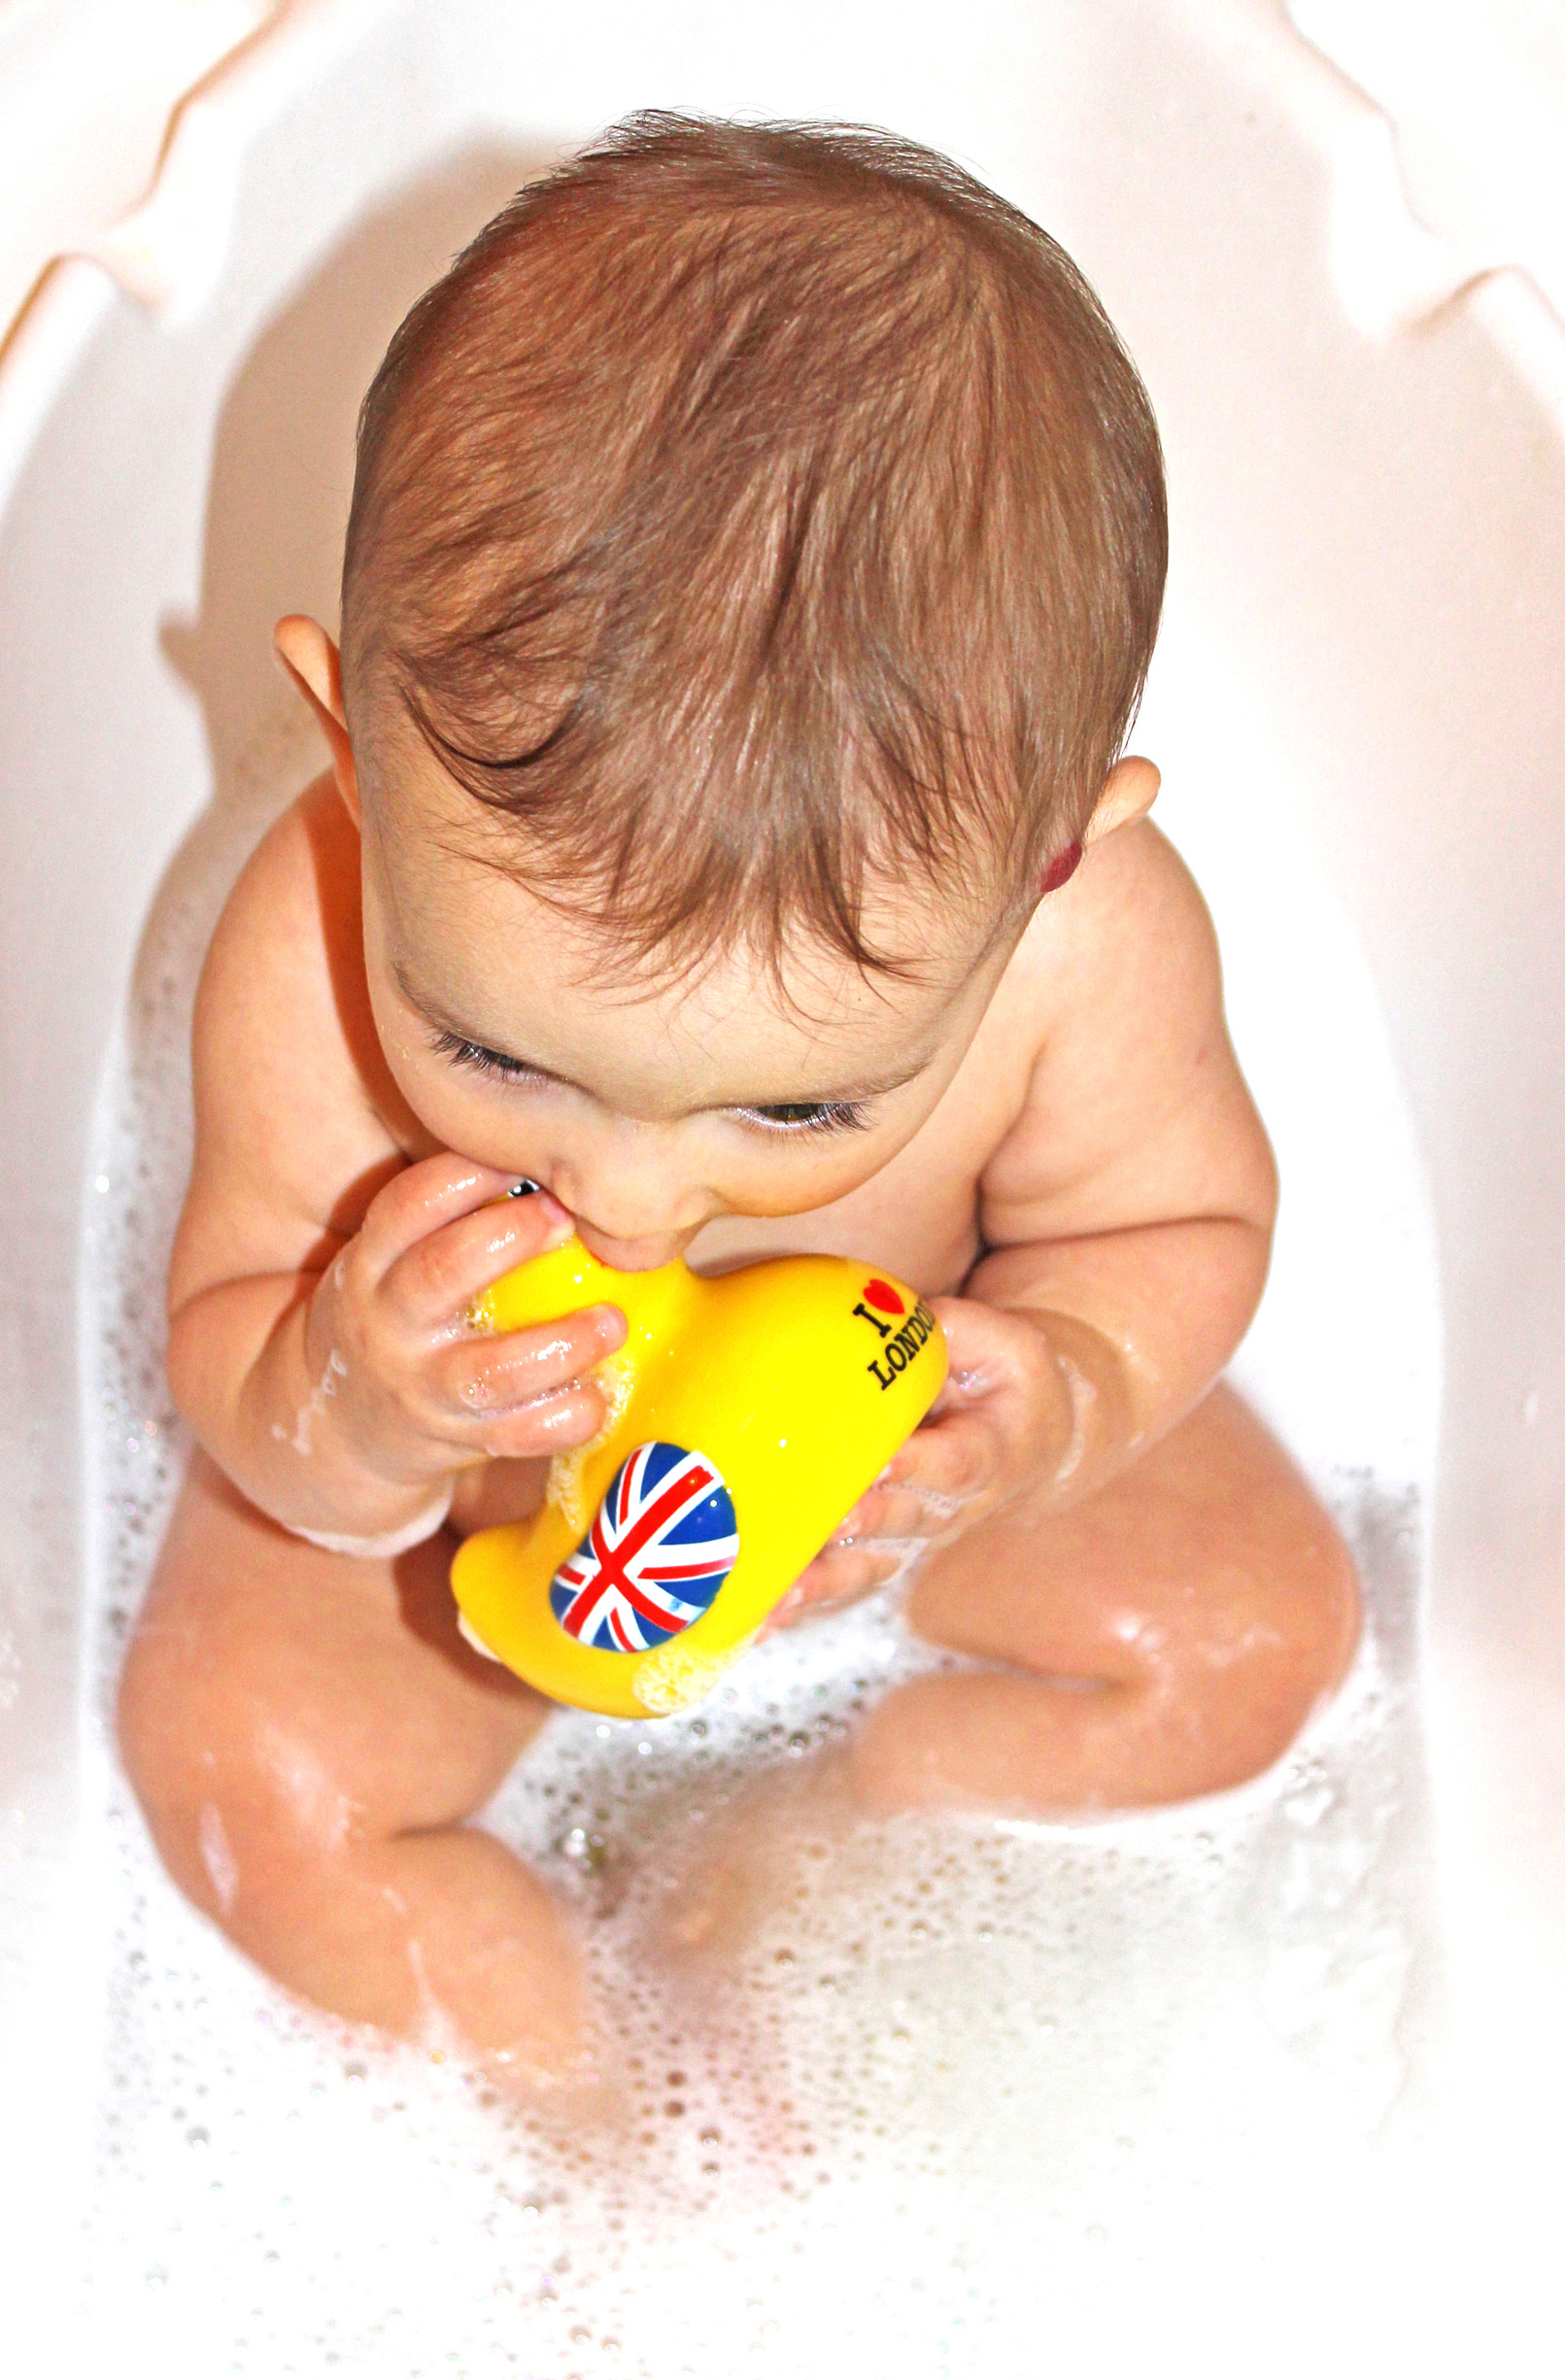 Baby bath with yellow duck toy photo